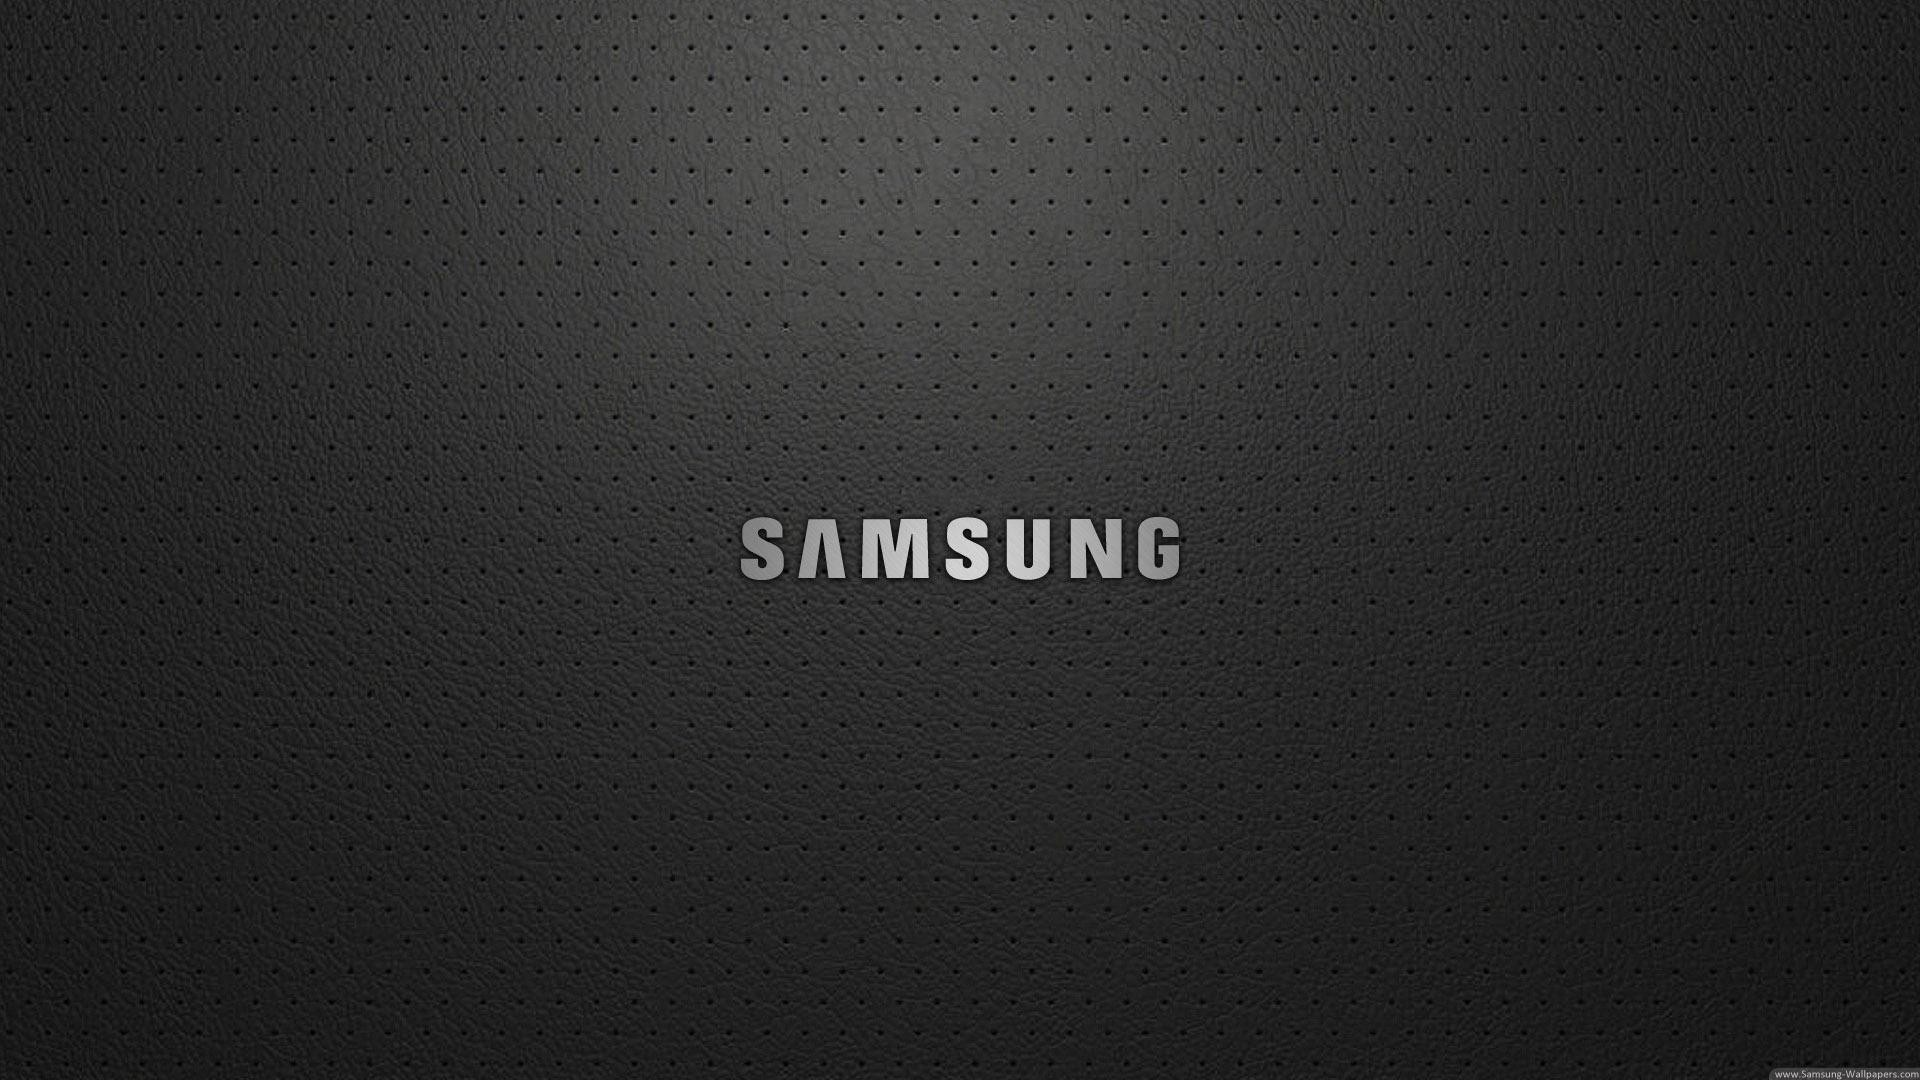 Samsung Galaxy S3 Wallpaper Space 71 Pictures